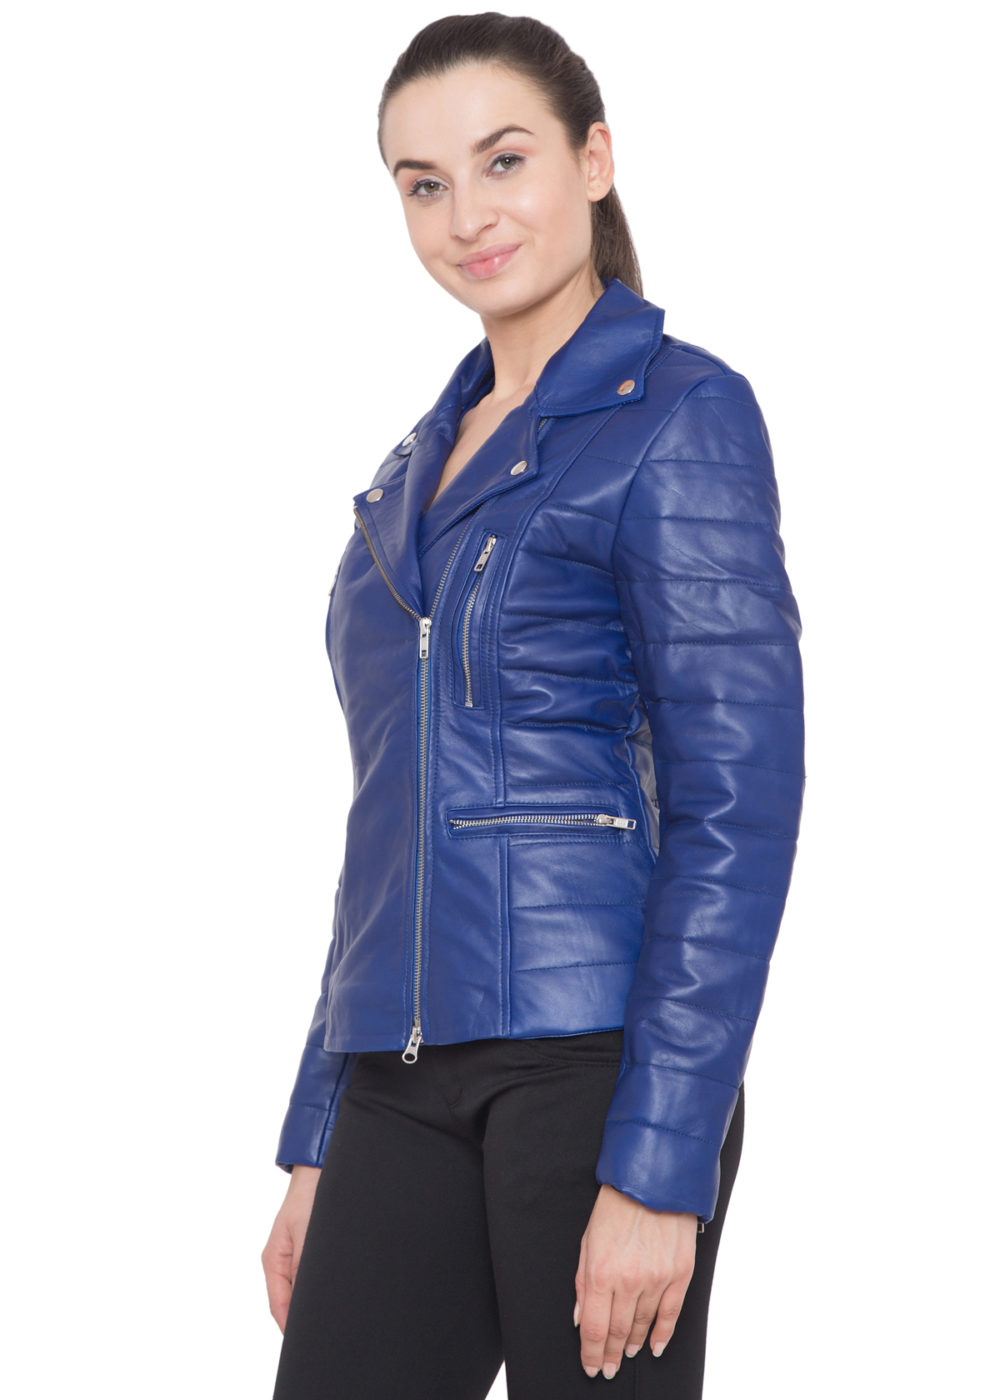 PURPLE BIKER FULL LEATHER JACKET-WOMEN